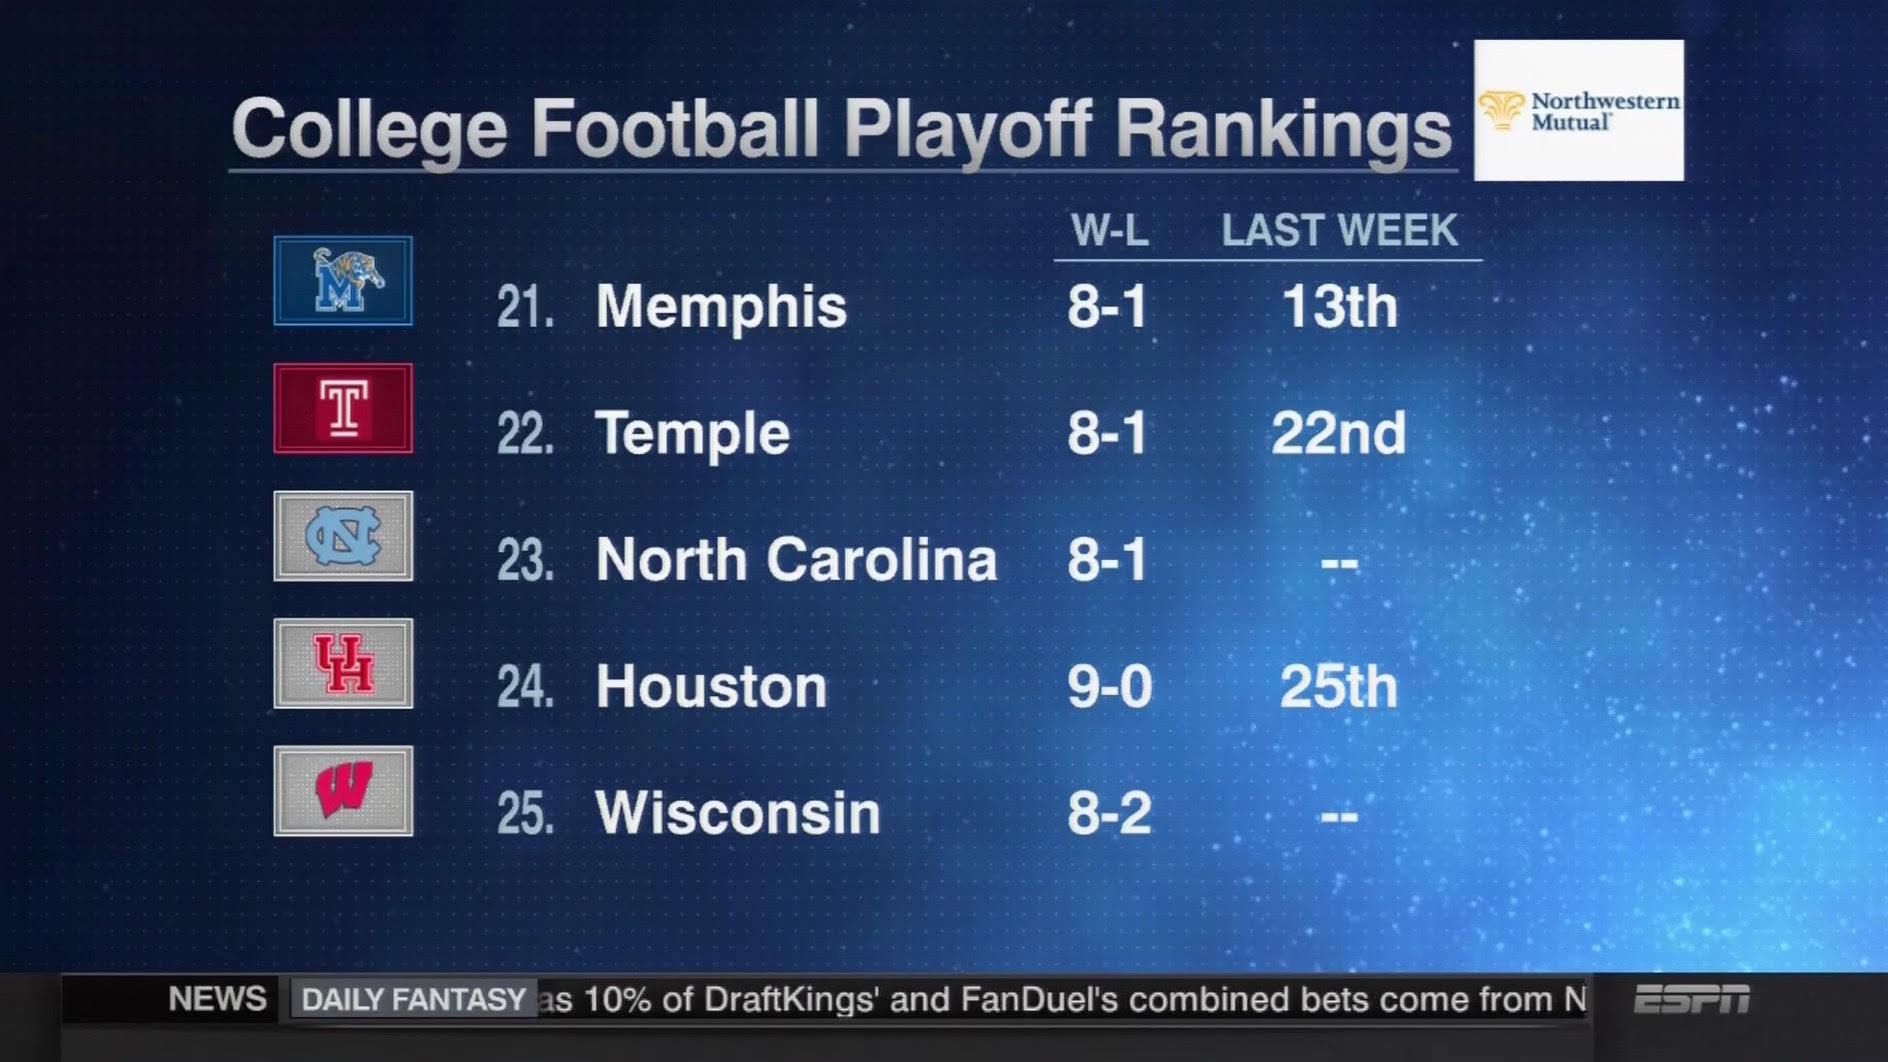 Round Table 122nd College Football Playoff Wisconsin Badgers Enter Rankings At No